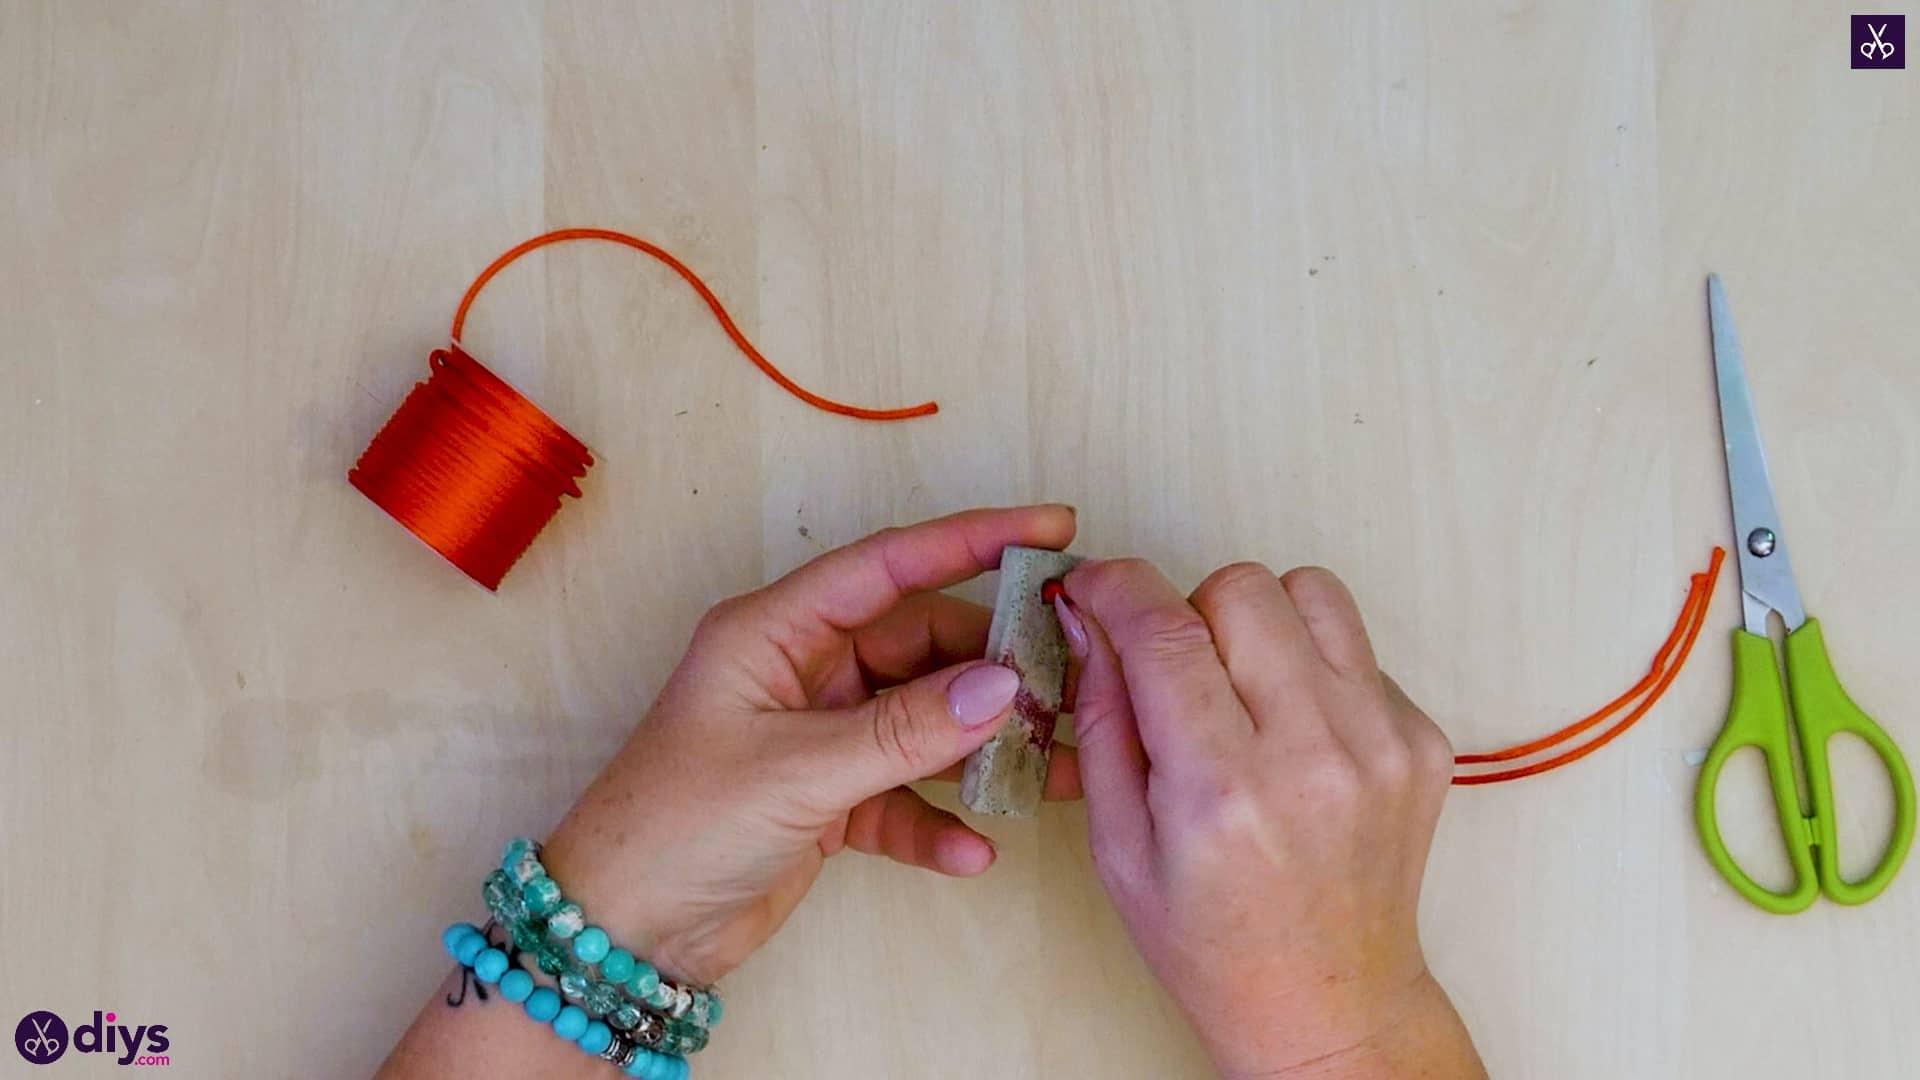 Diy concrete necklace with glitter step 11a